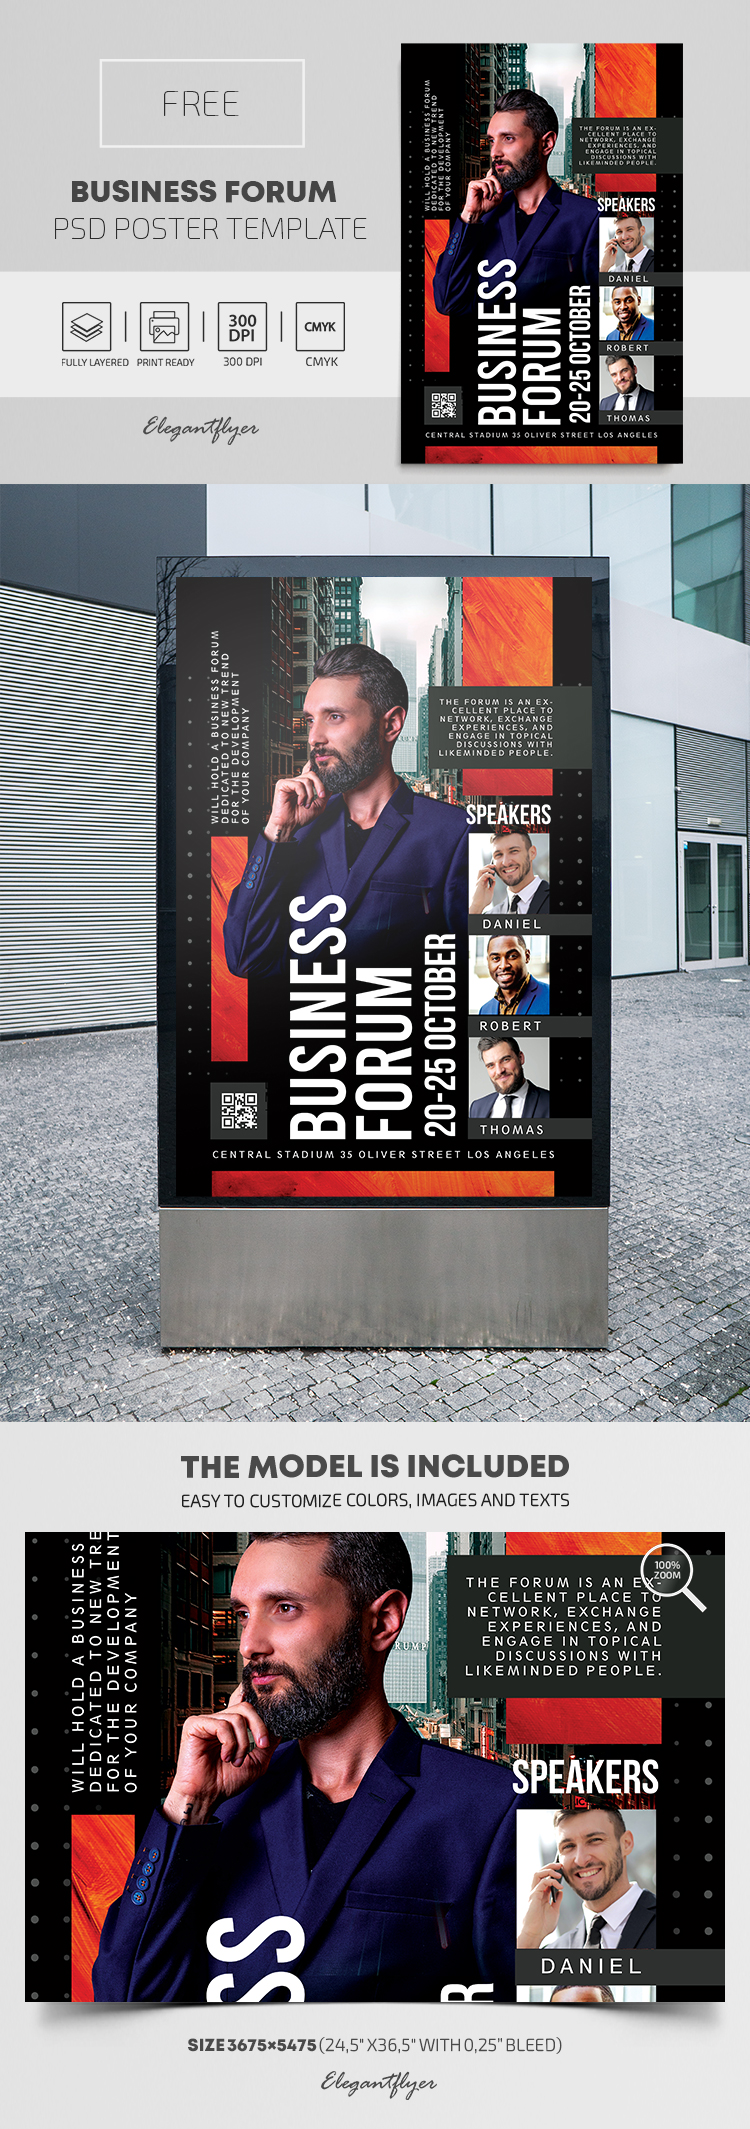 Business Forum – Free PSD Poster Template